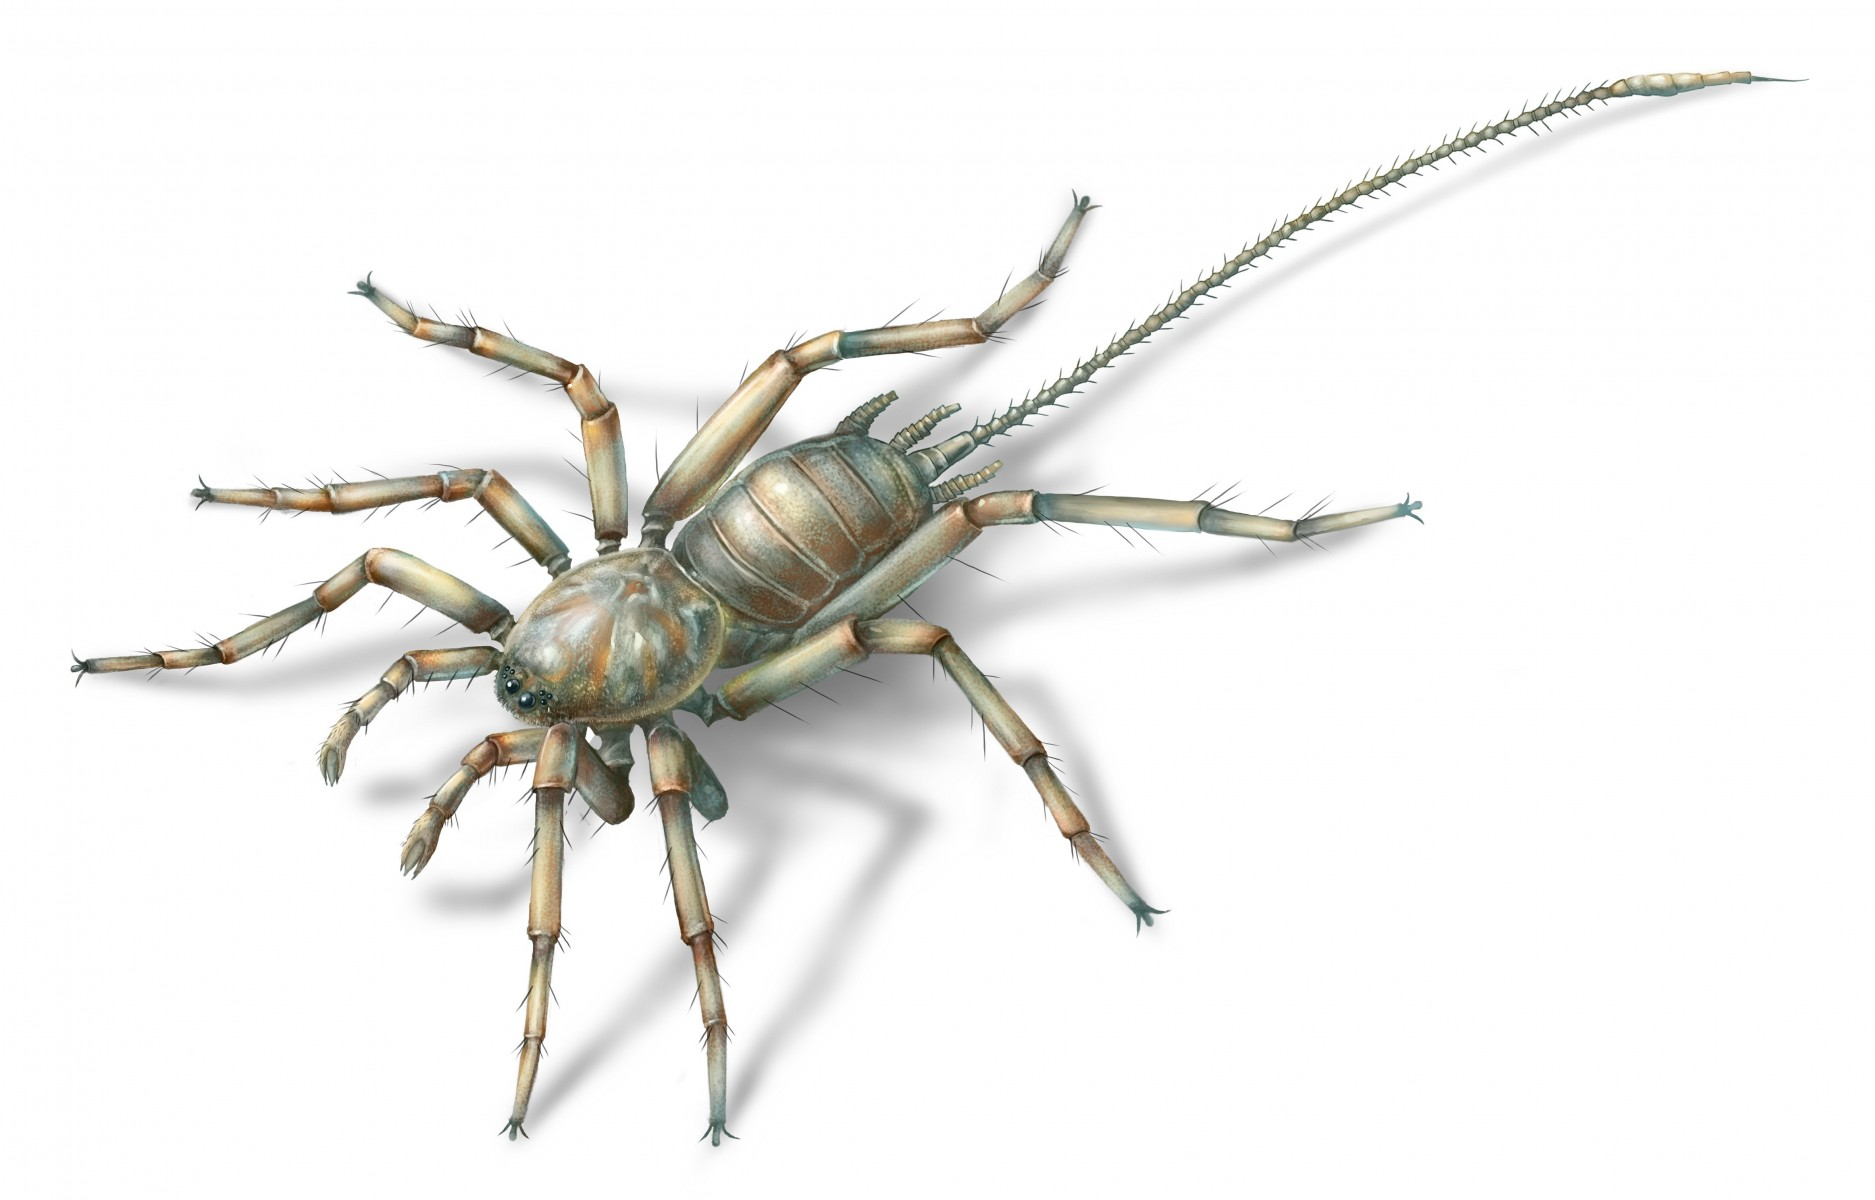 Spider Fossils With Tails: 'Fantastic' Arachnid Surprise